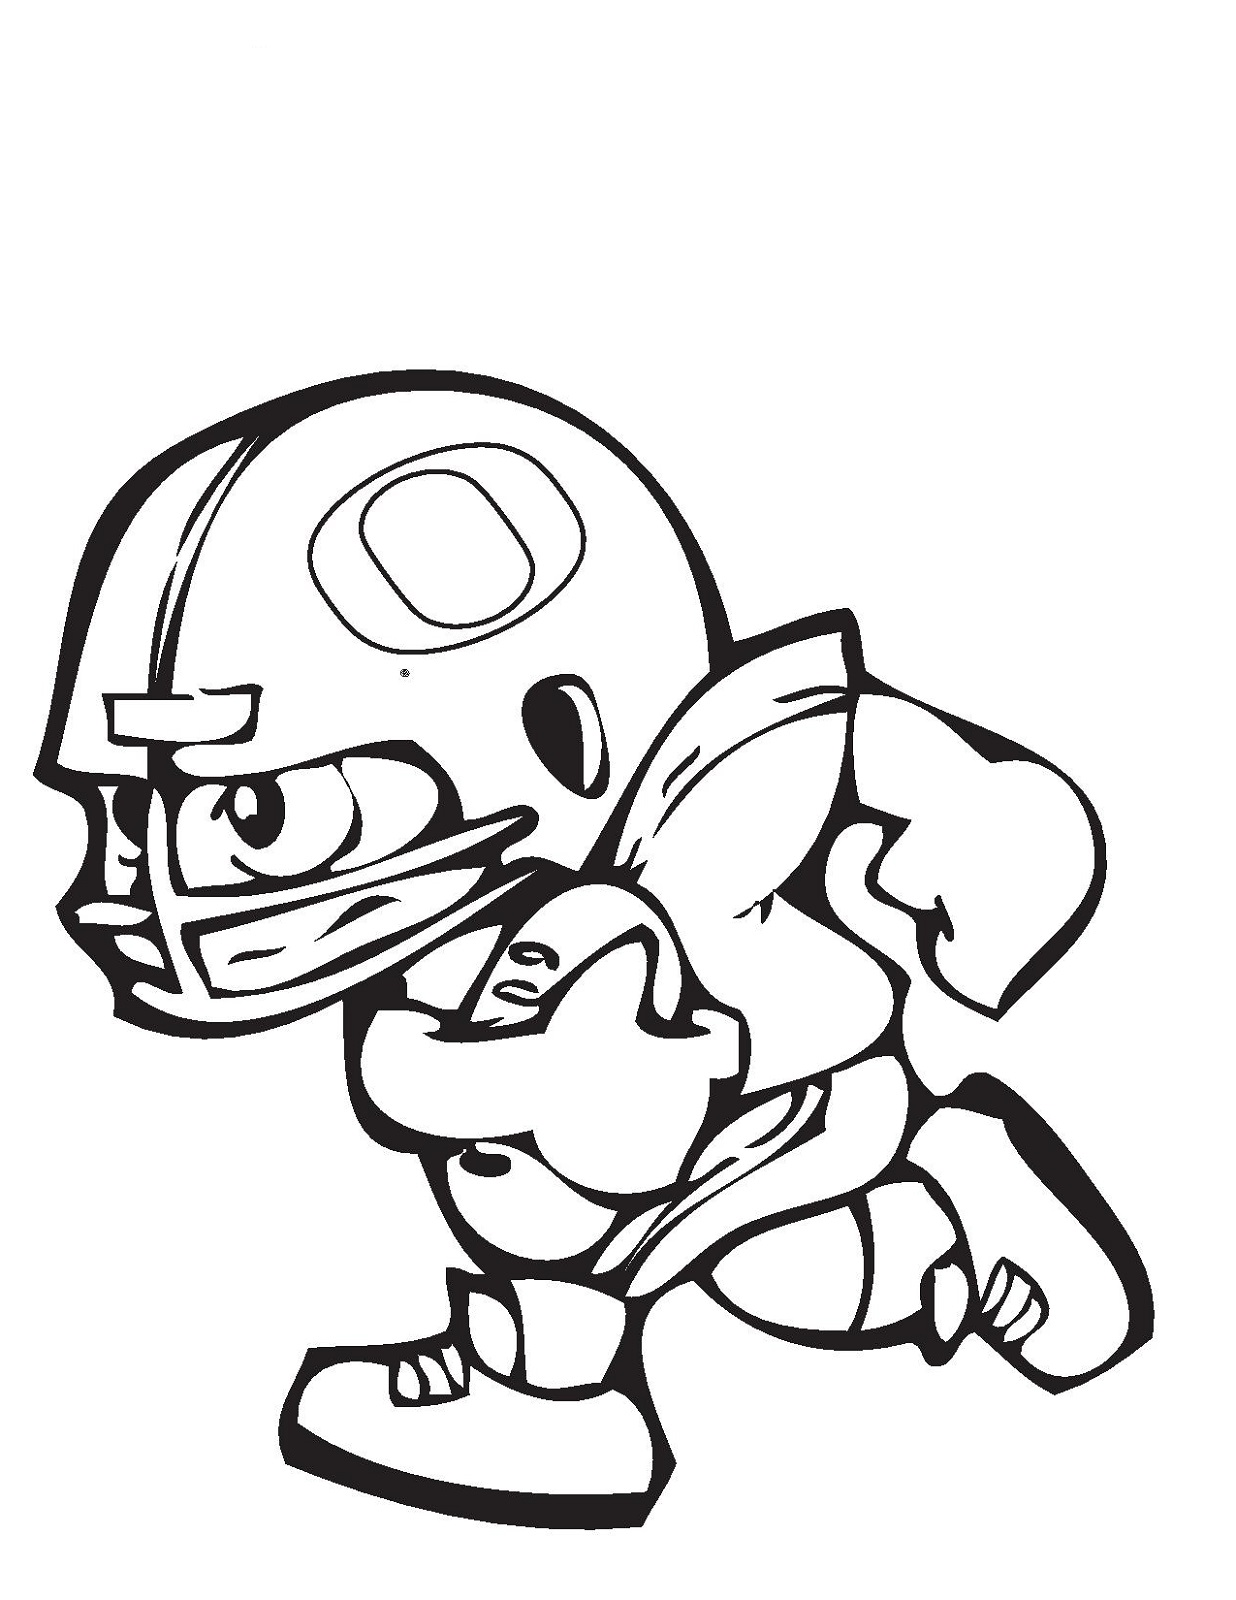 1236x1600 Football Color Pages 2018 Kiddo Shelter